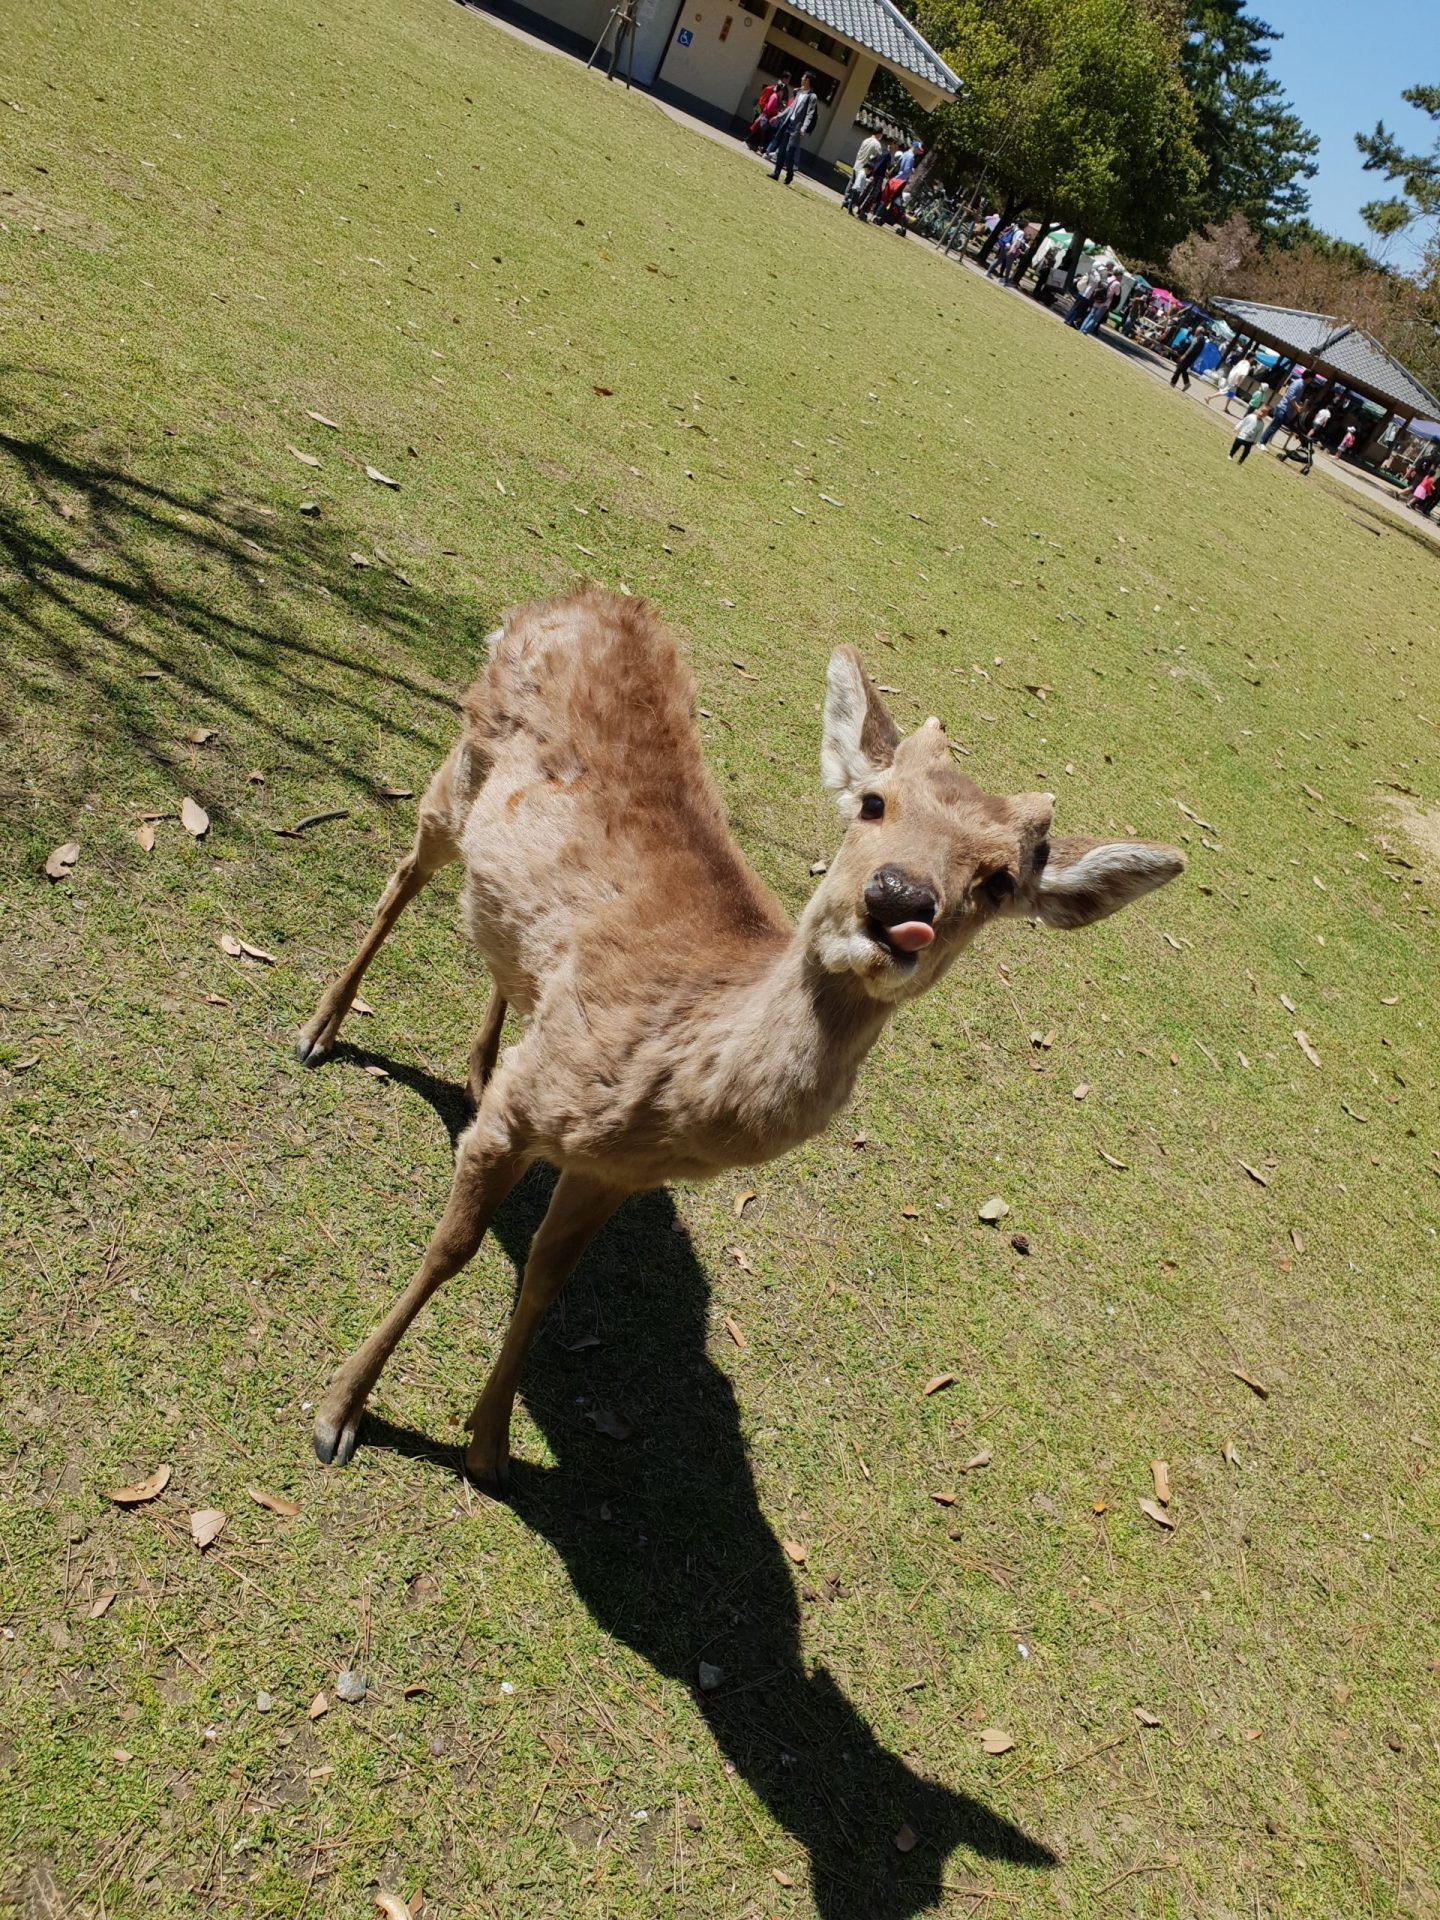 Deer at Nara park sticking tongue out